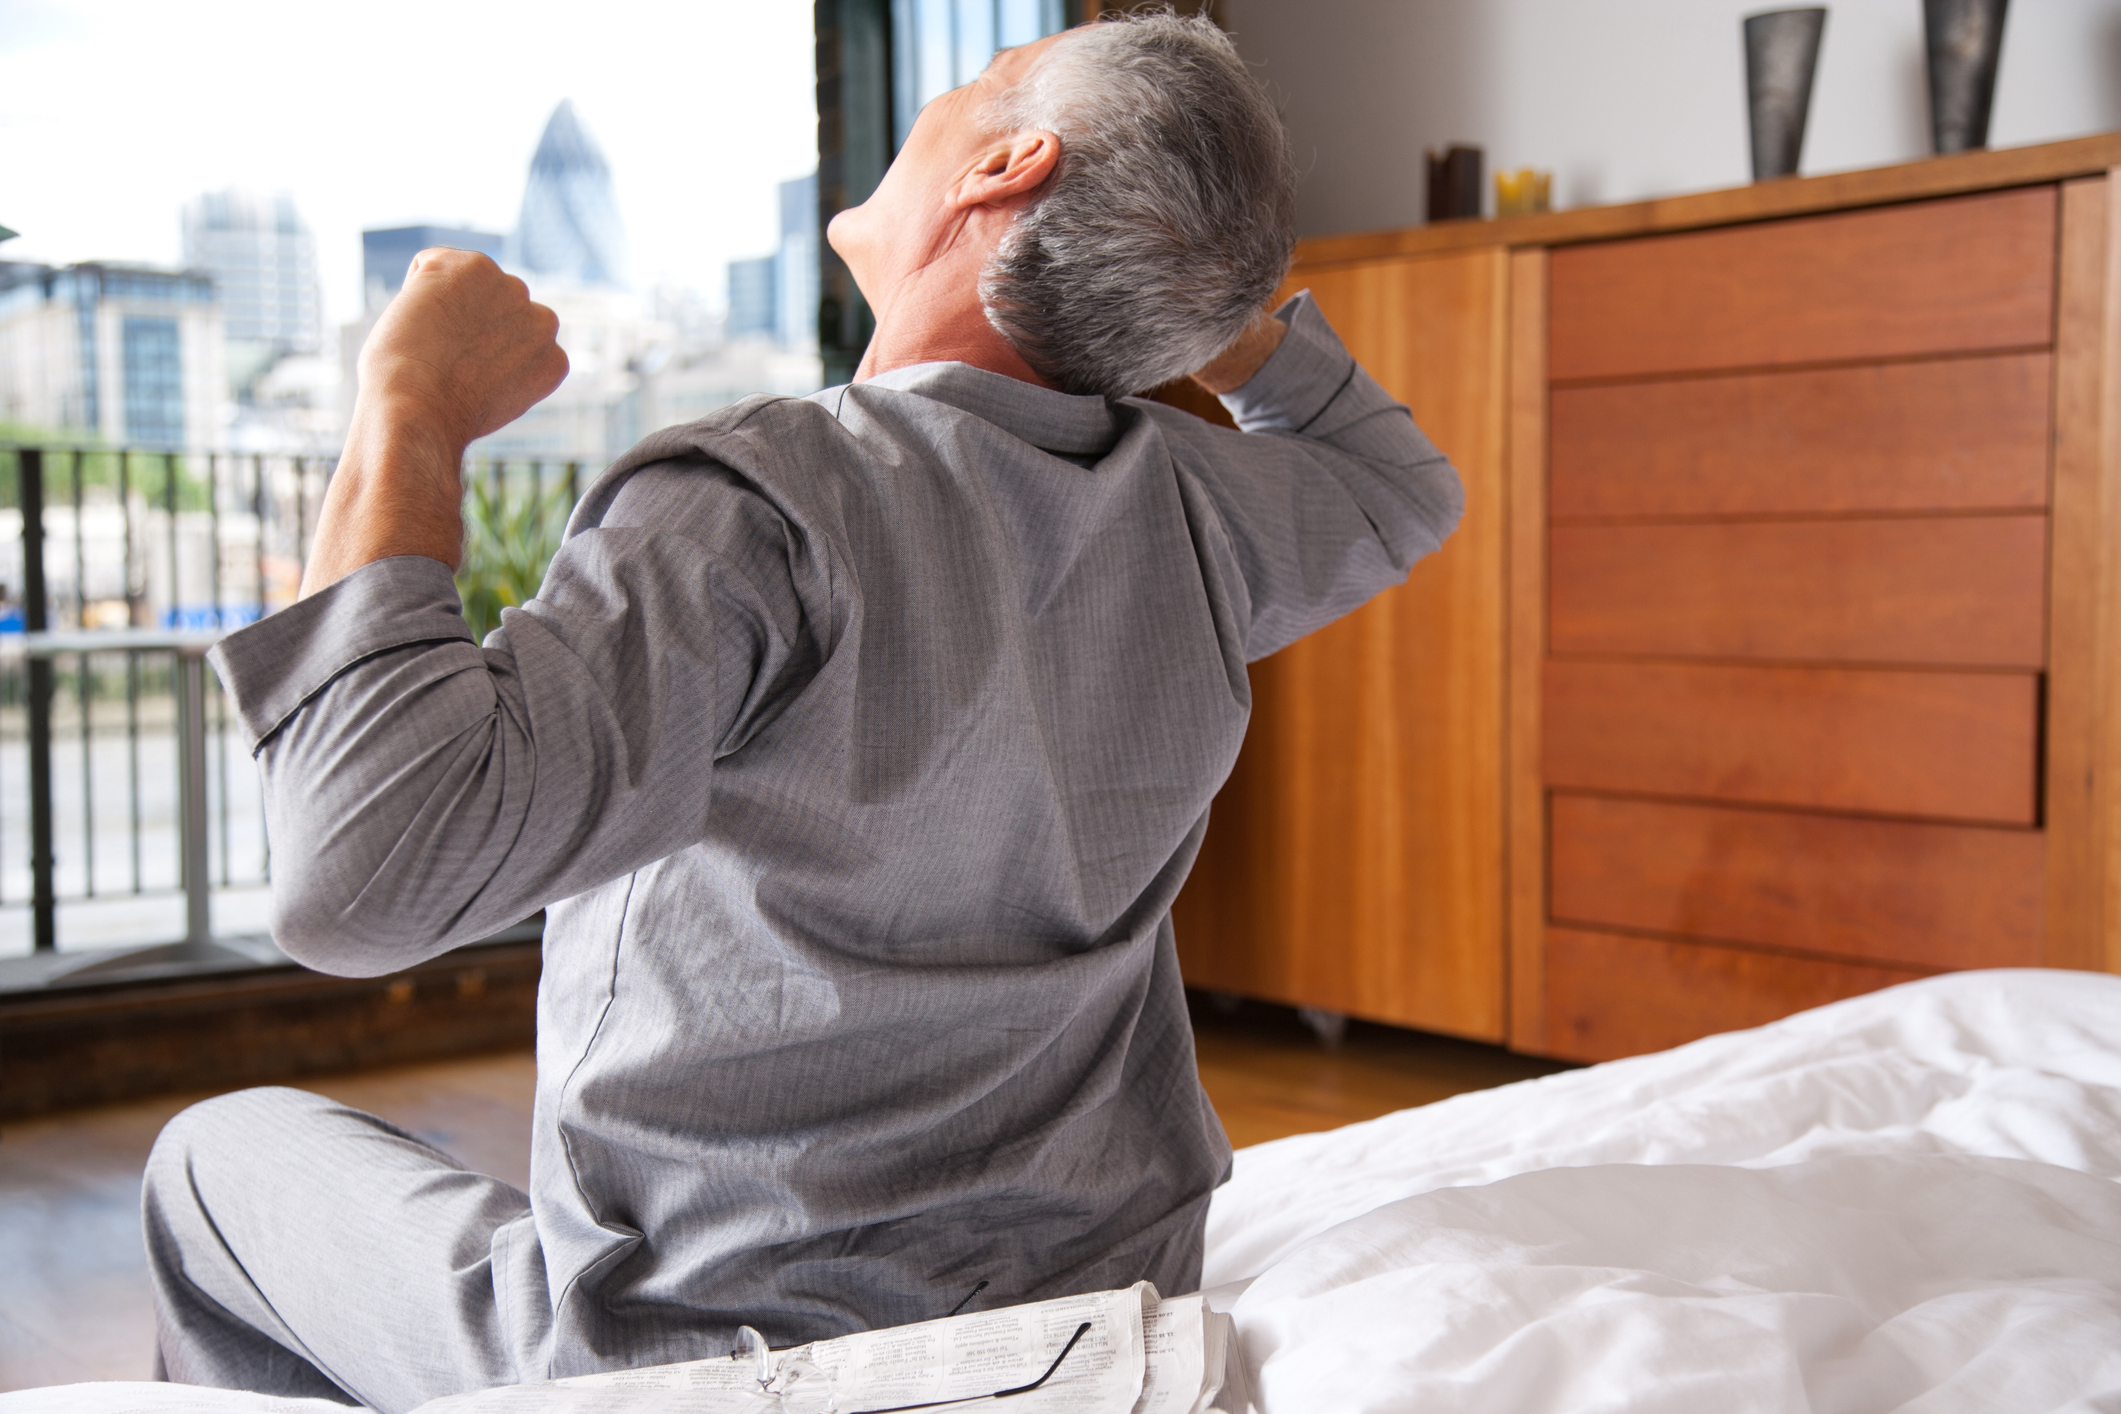 The sleep sweet spot that reduces heart attack and stroke risk